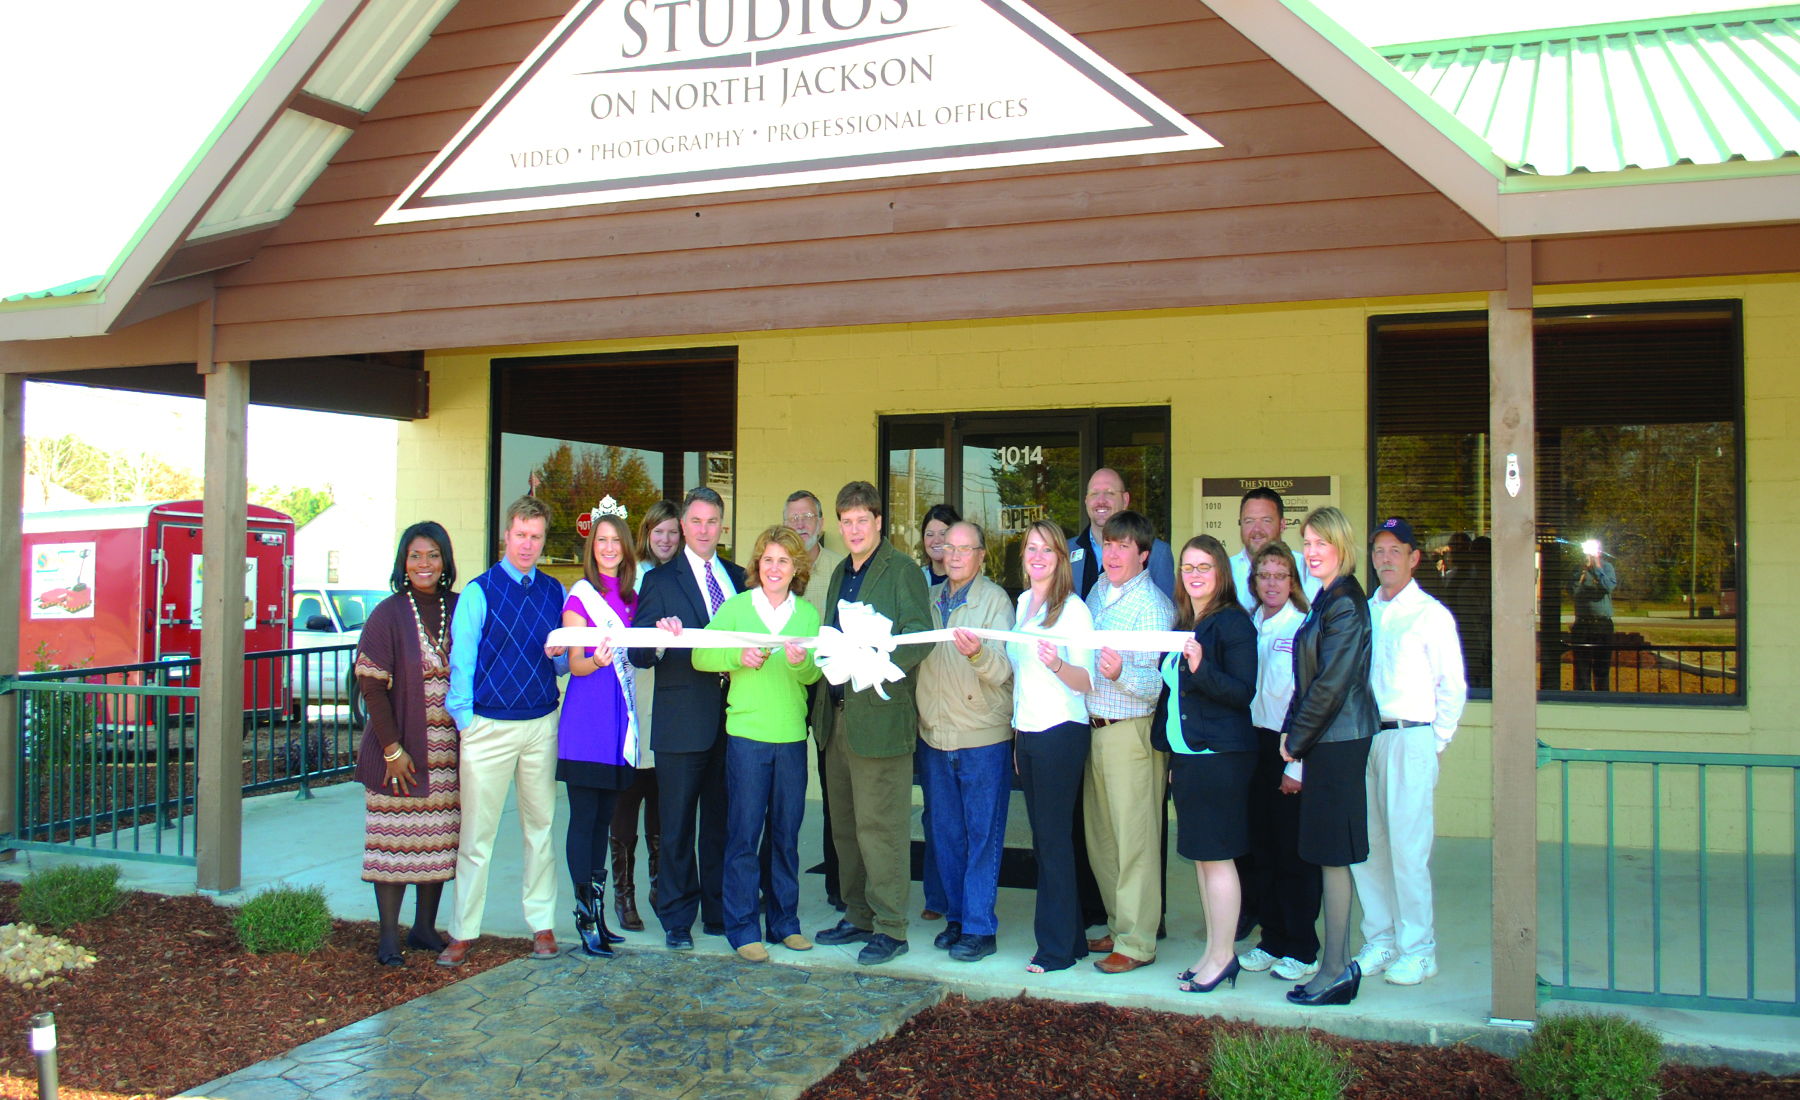 Studios on North Jackson: Ribbon Cutting